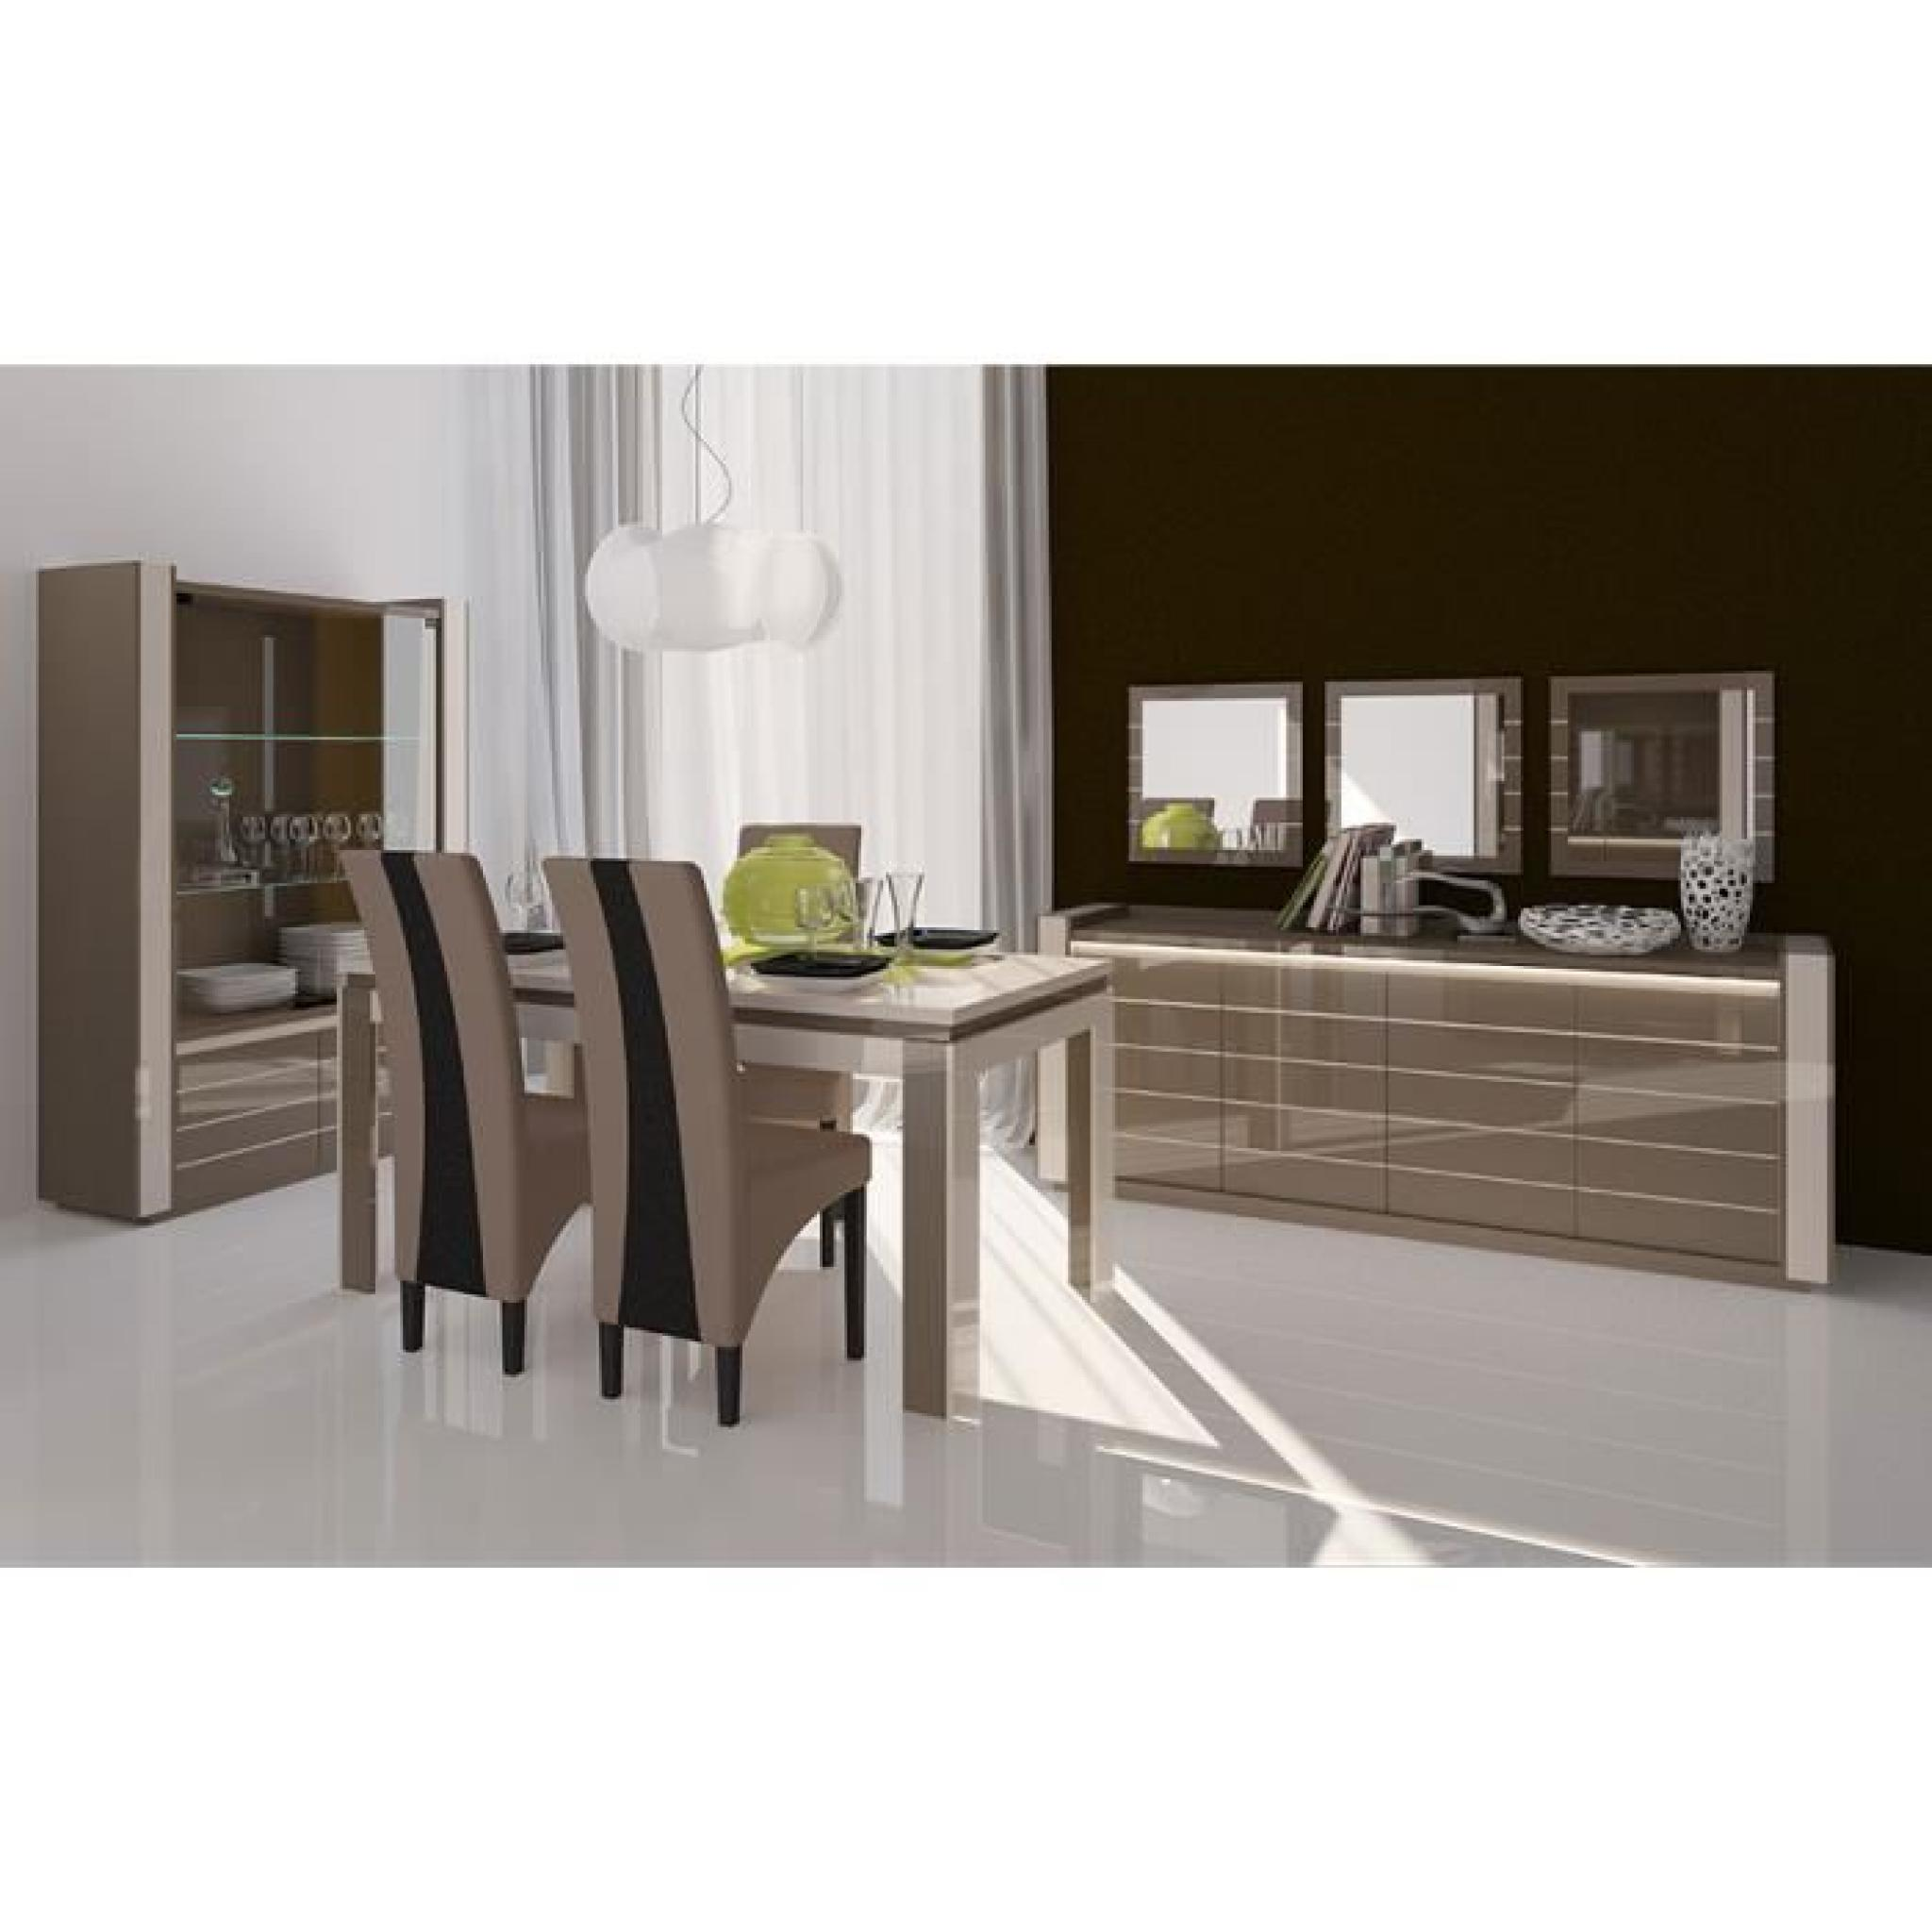 salle manger compl te cappuccino et cr me laqu design erica 2 table 180 achat vente. Black Bedroom Furniture Sets. Home Design Ideas